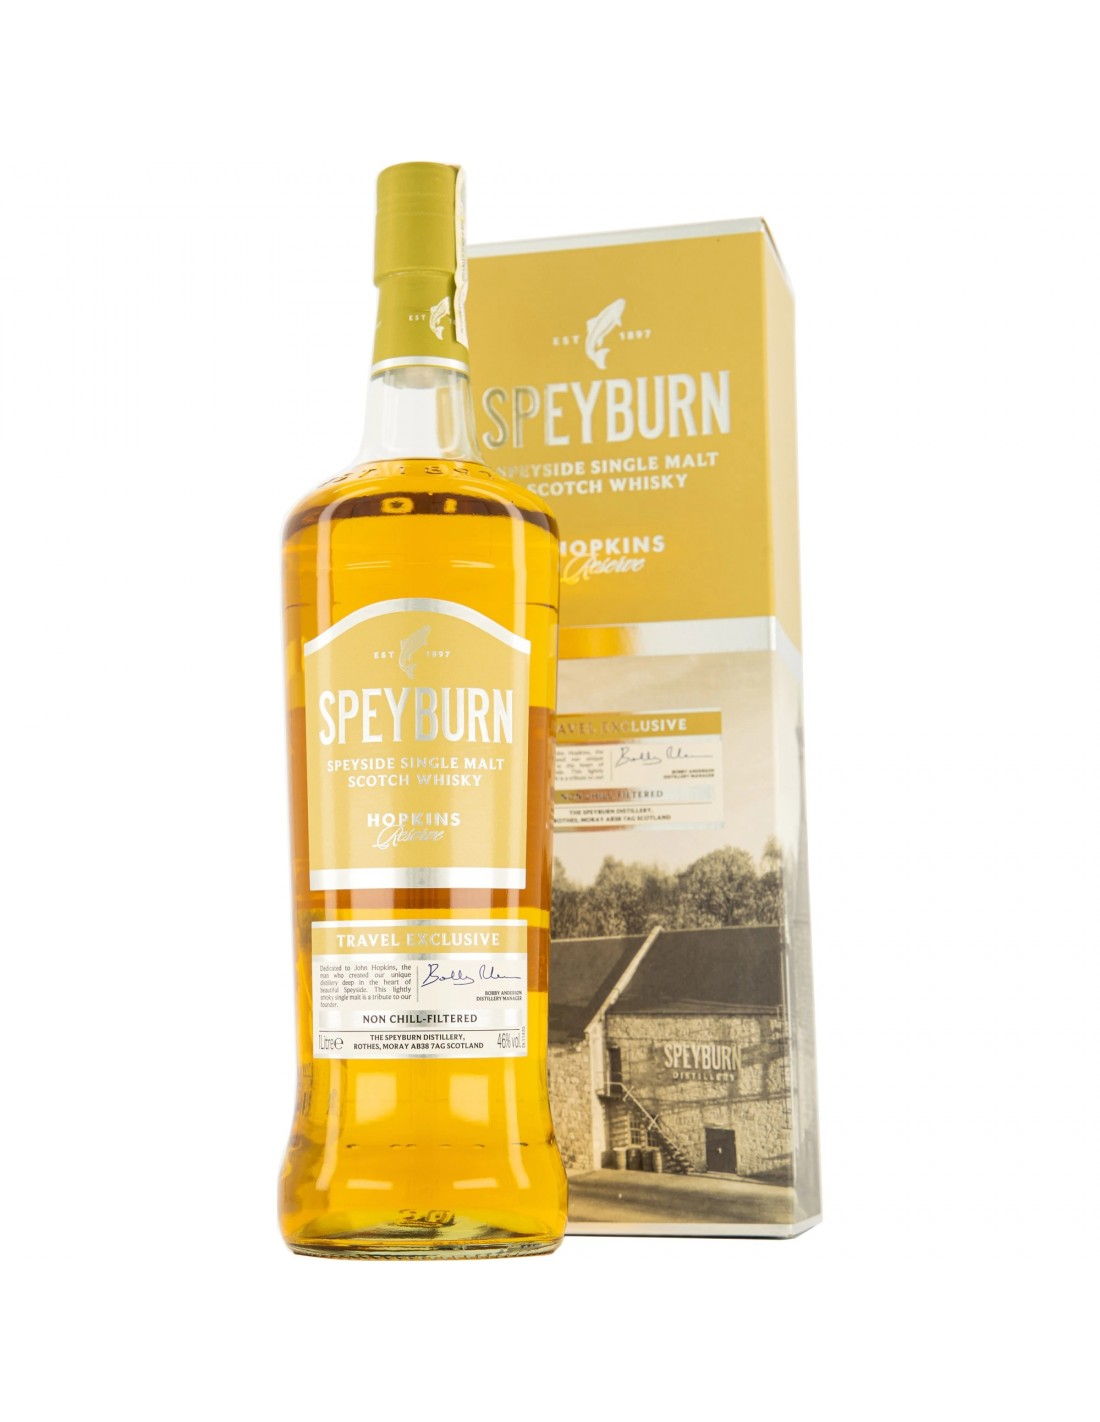 Whisky Speyburn Single Malt Hopkins Reserve, 40% alc., 0.7L, Scotia